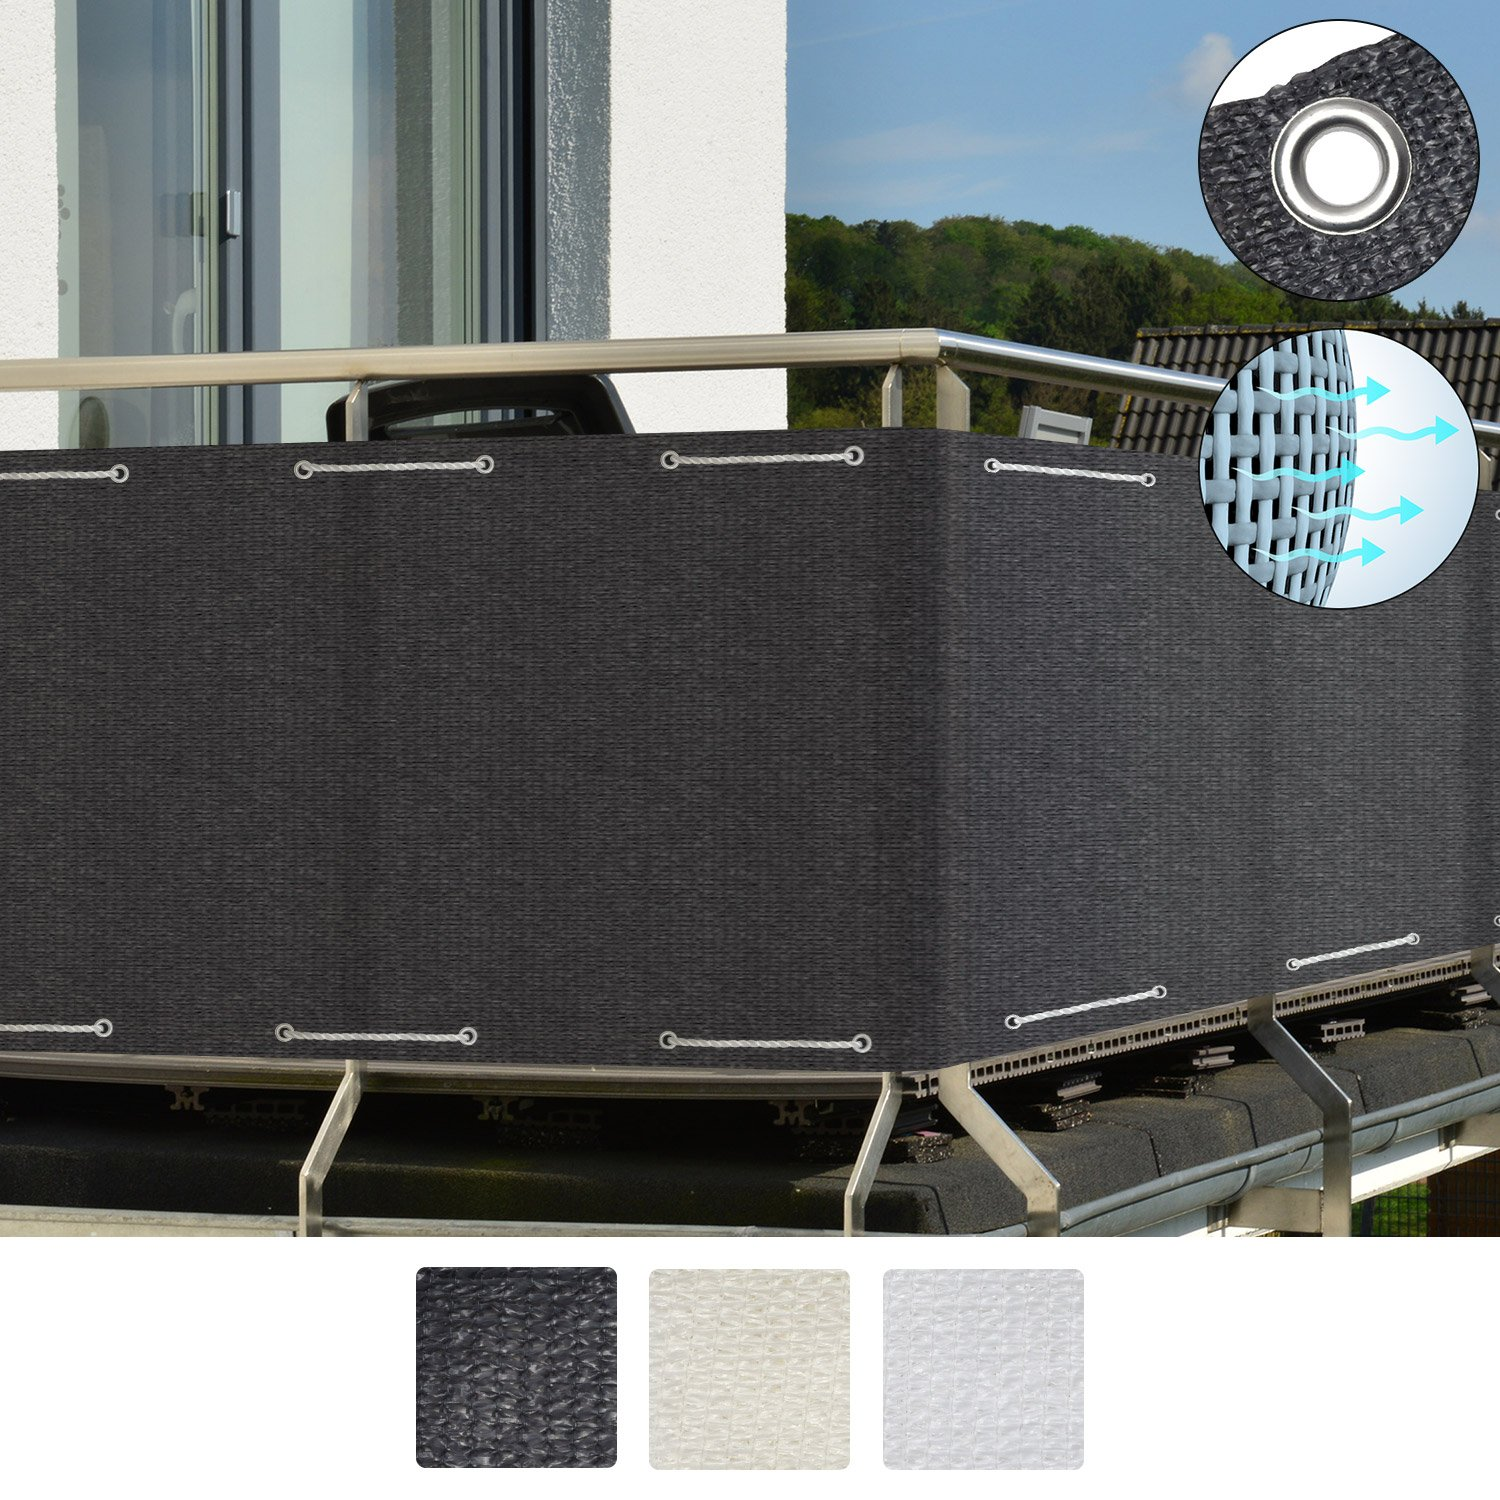 Sol Royal Balcony Privacy Screen 90x300 cm SolVision HB2 Sun Wind UV Protection White Screening with Eyelets & Cord